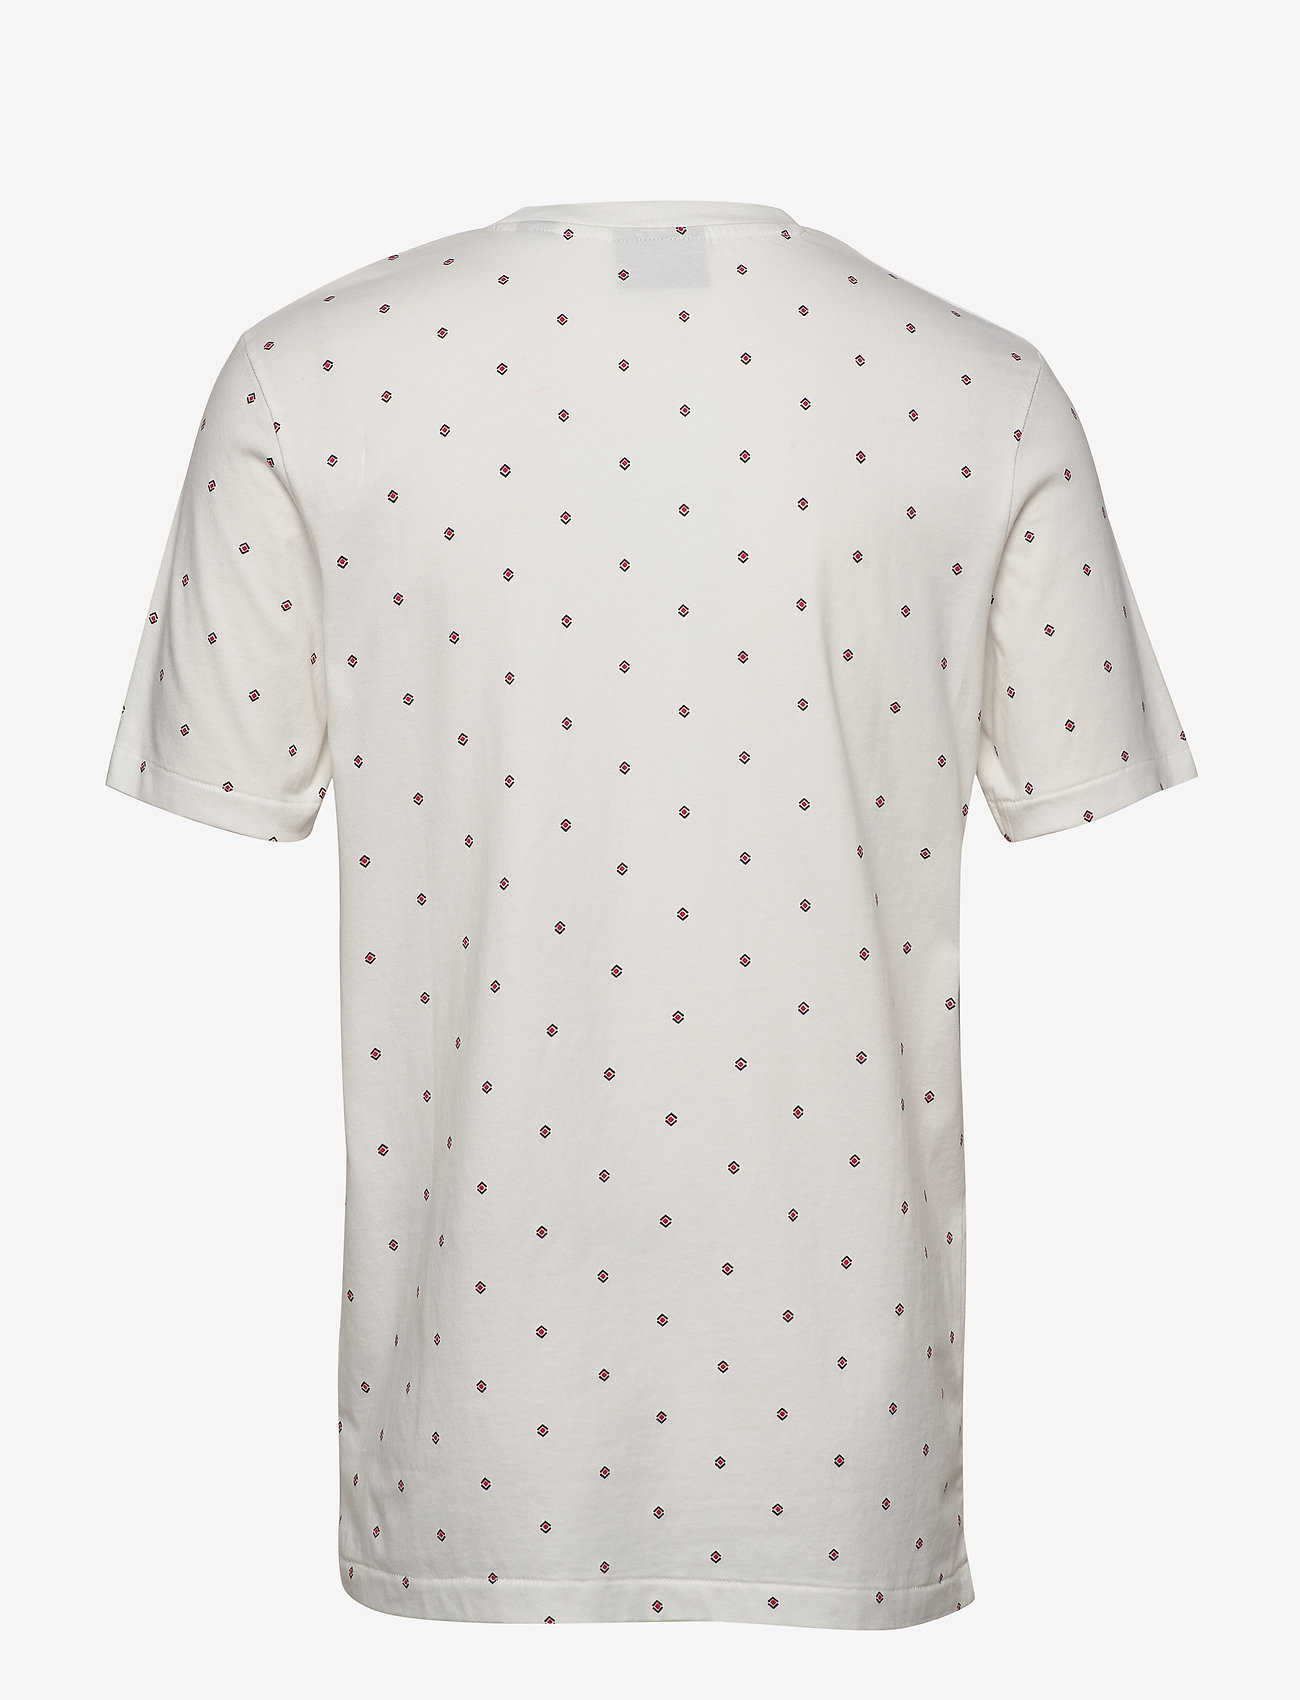 Scotch & Soda - Short sleeve tee with allover print - short-sleeved t-shirts - combo g - 1